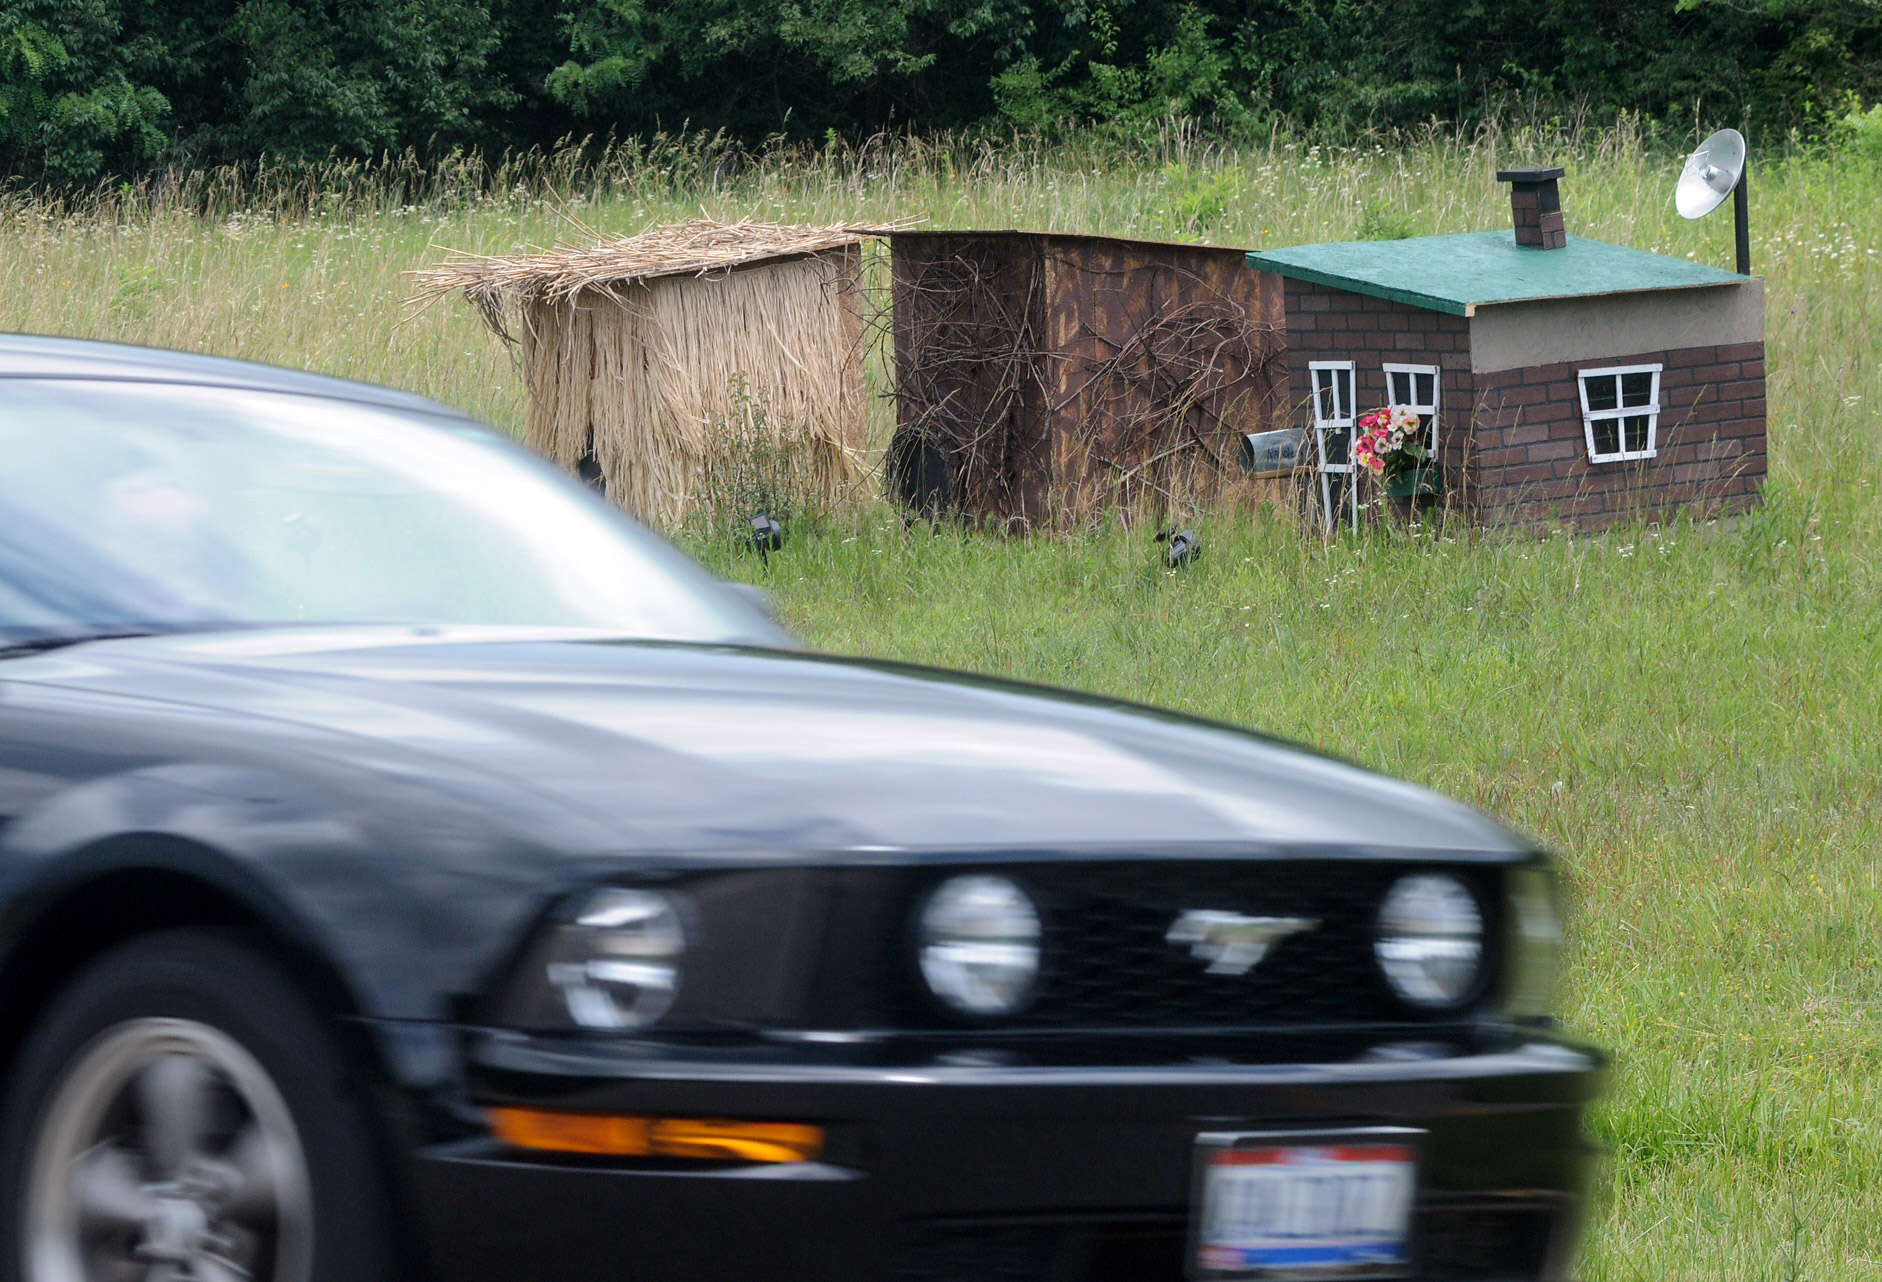 Three houses, one made of hay, one of sticks and one of bricks, have been constructed along U.S. Route 35 in Xenia Township west of Dayton, Ohio on June 15, 2015.